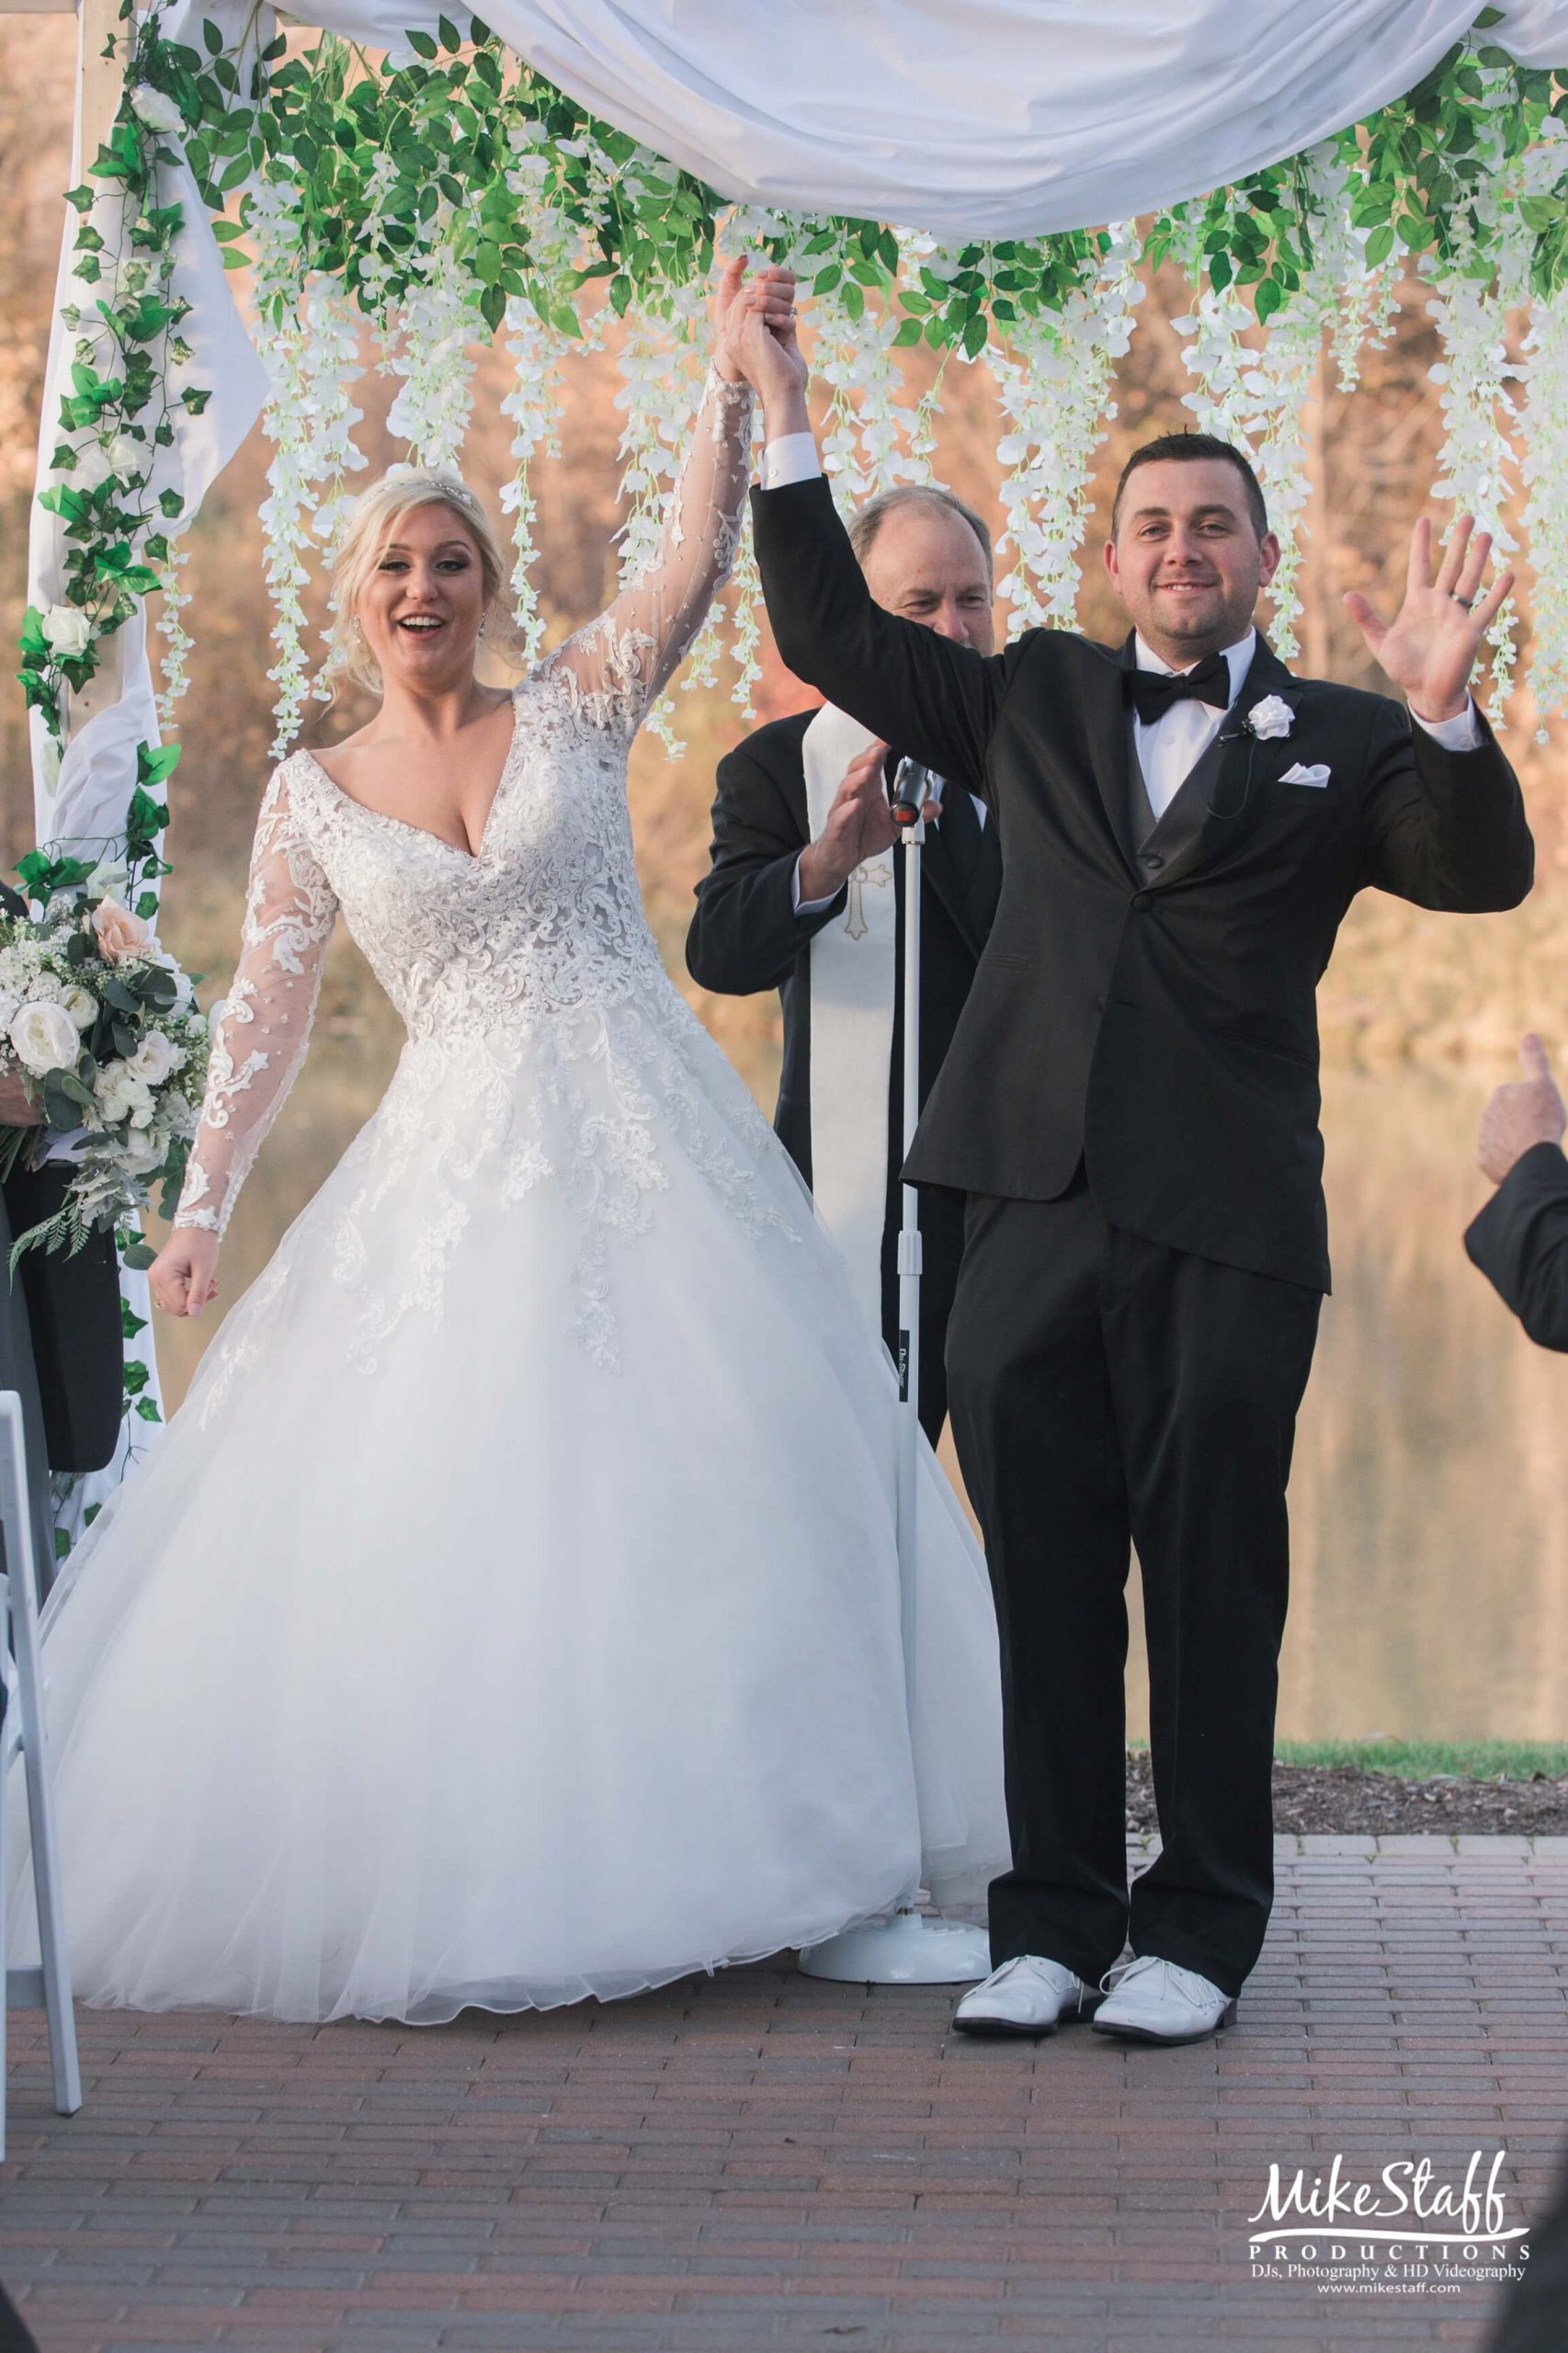 bride and groom recessional celebration